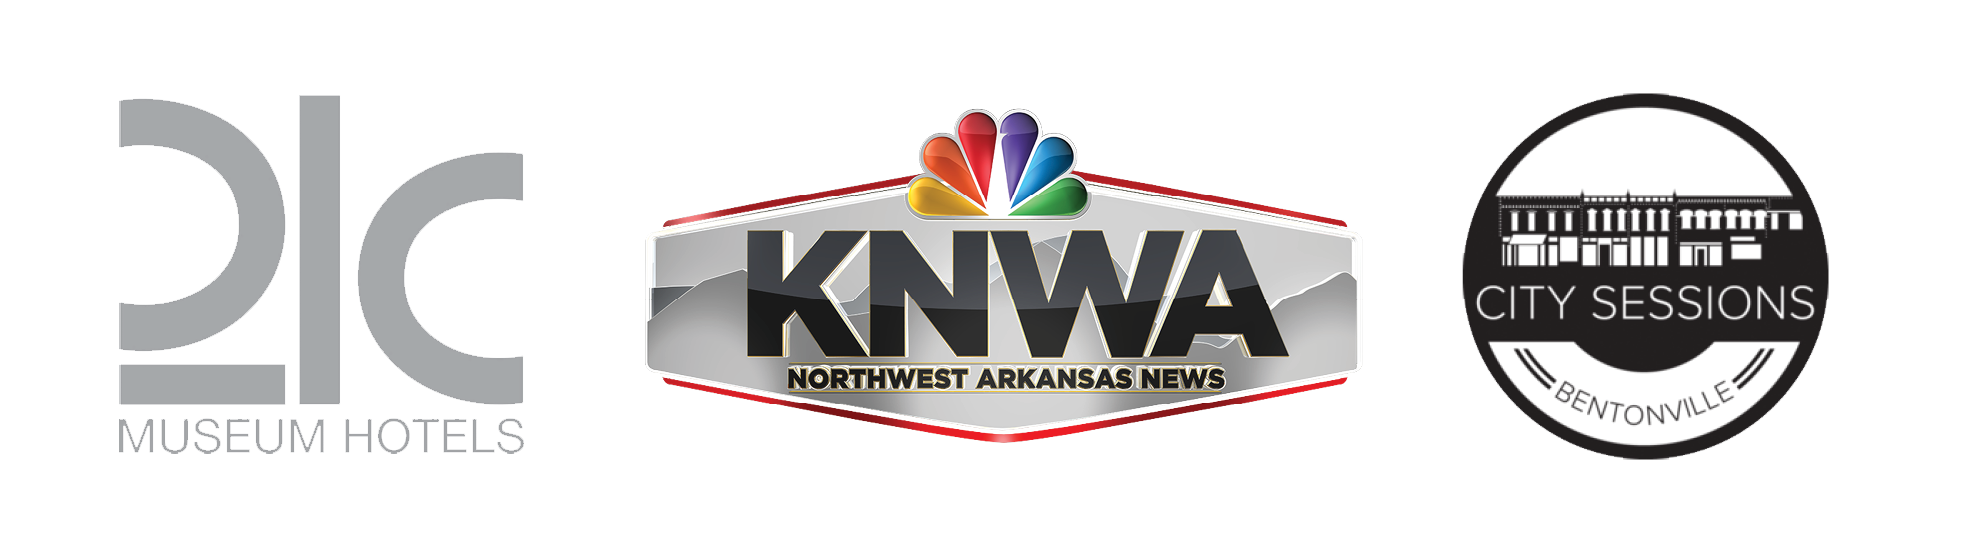 21c KNWA City Sessions logos